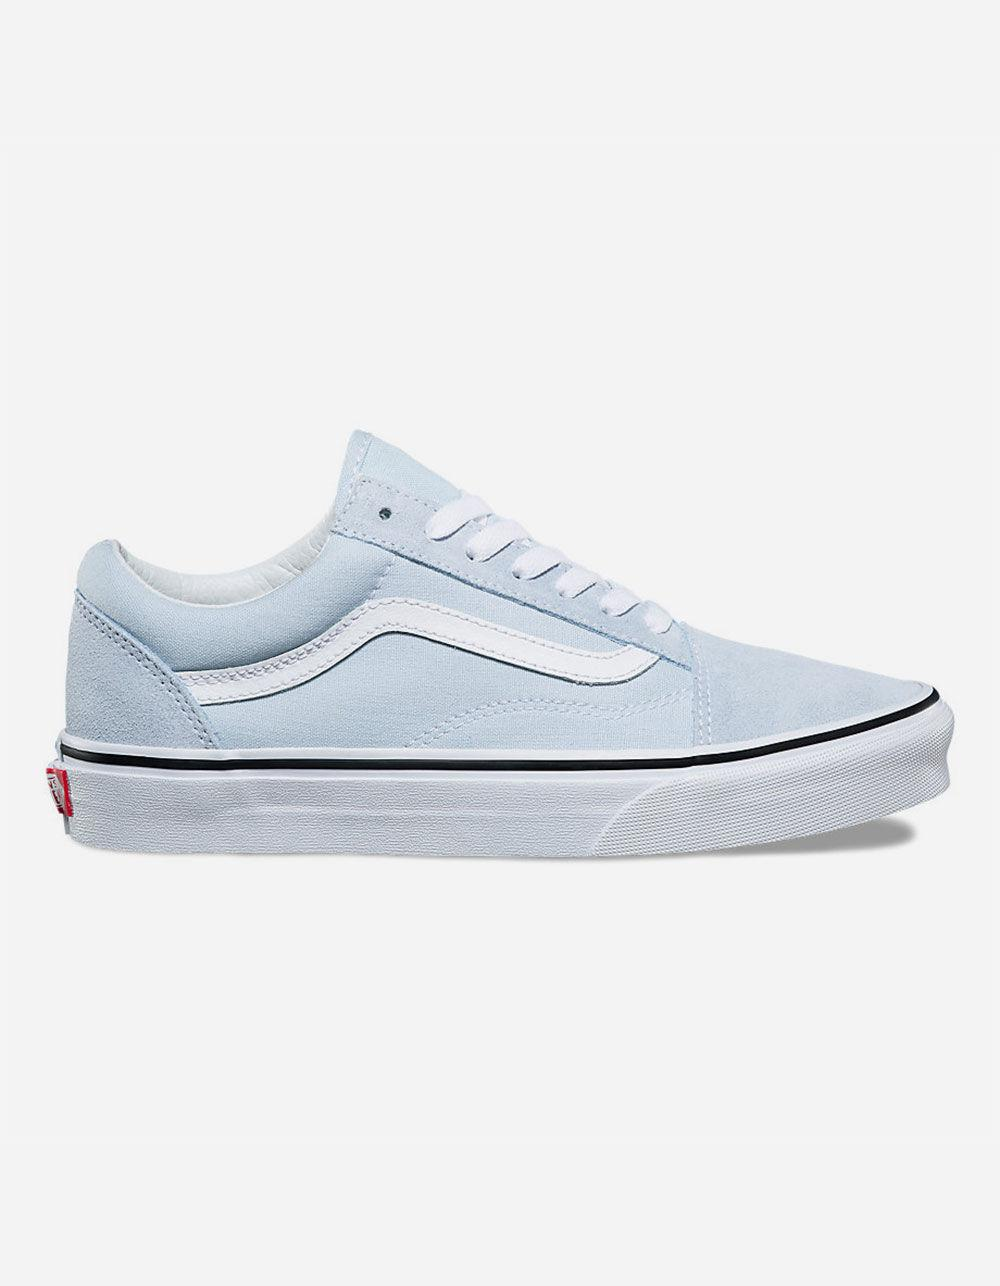 3242fdf6a Vans Old Skool Baby Blue & True White Womens Shoes in Blue - Lyst